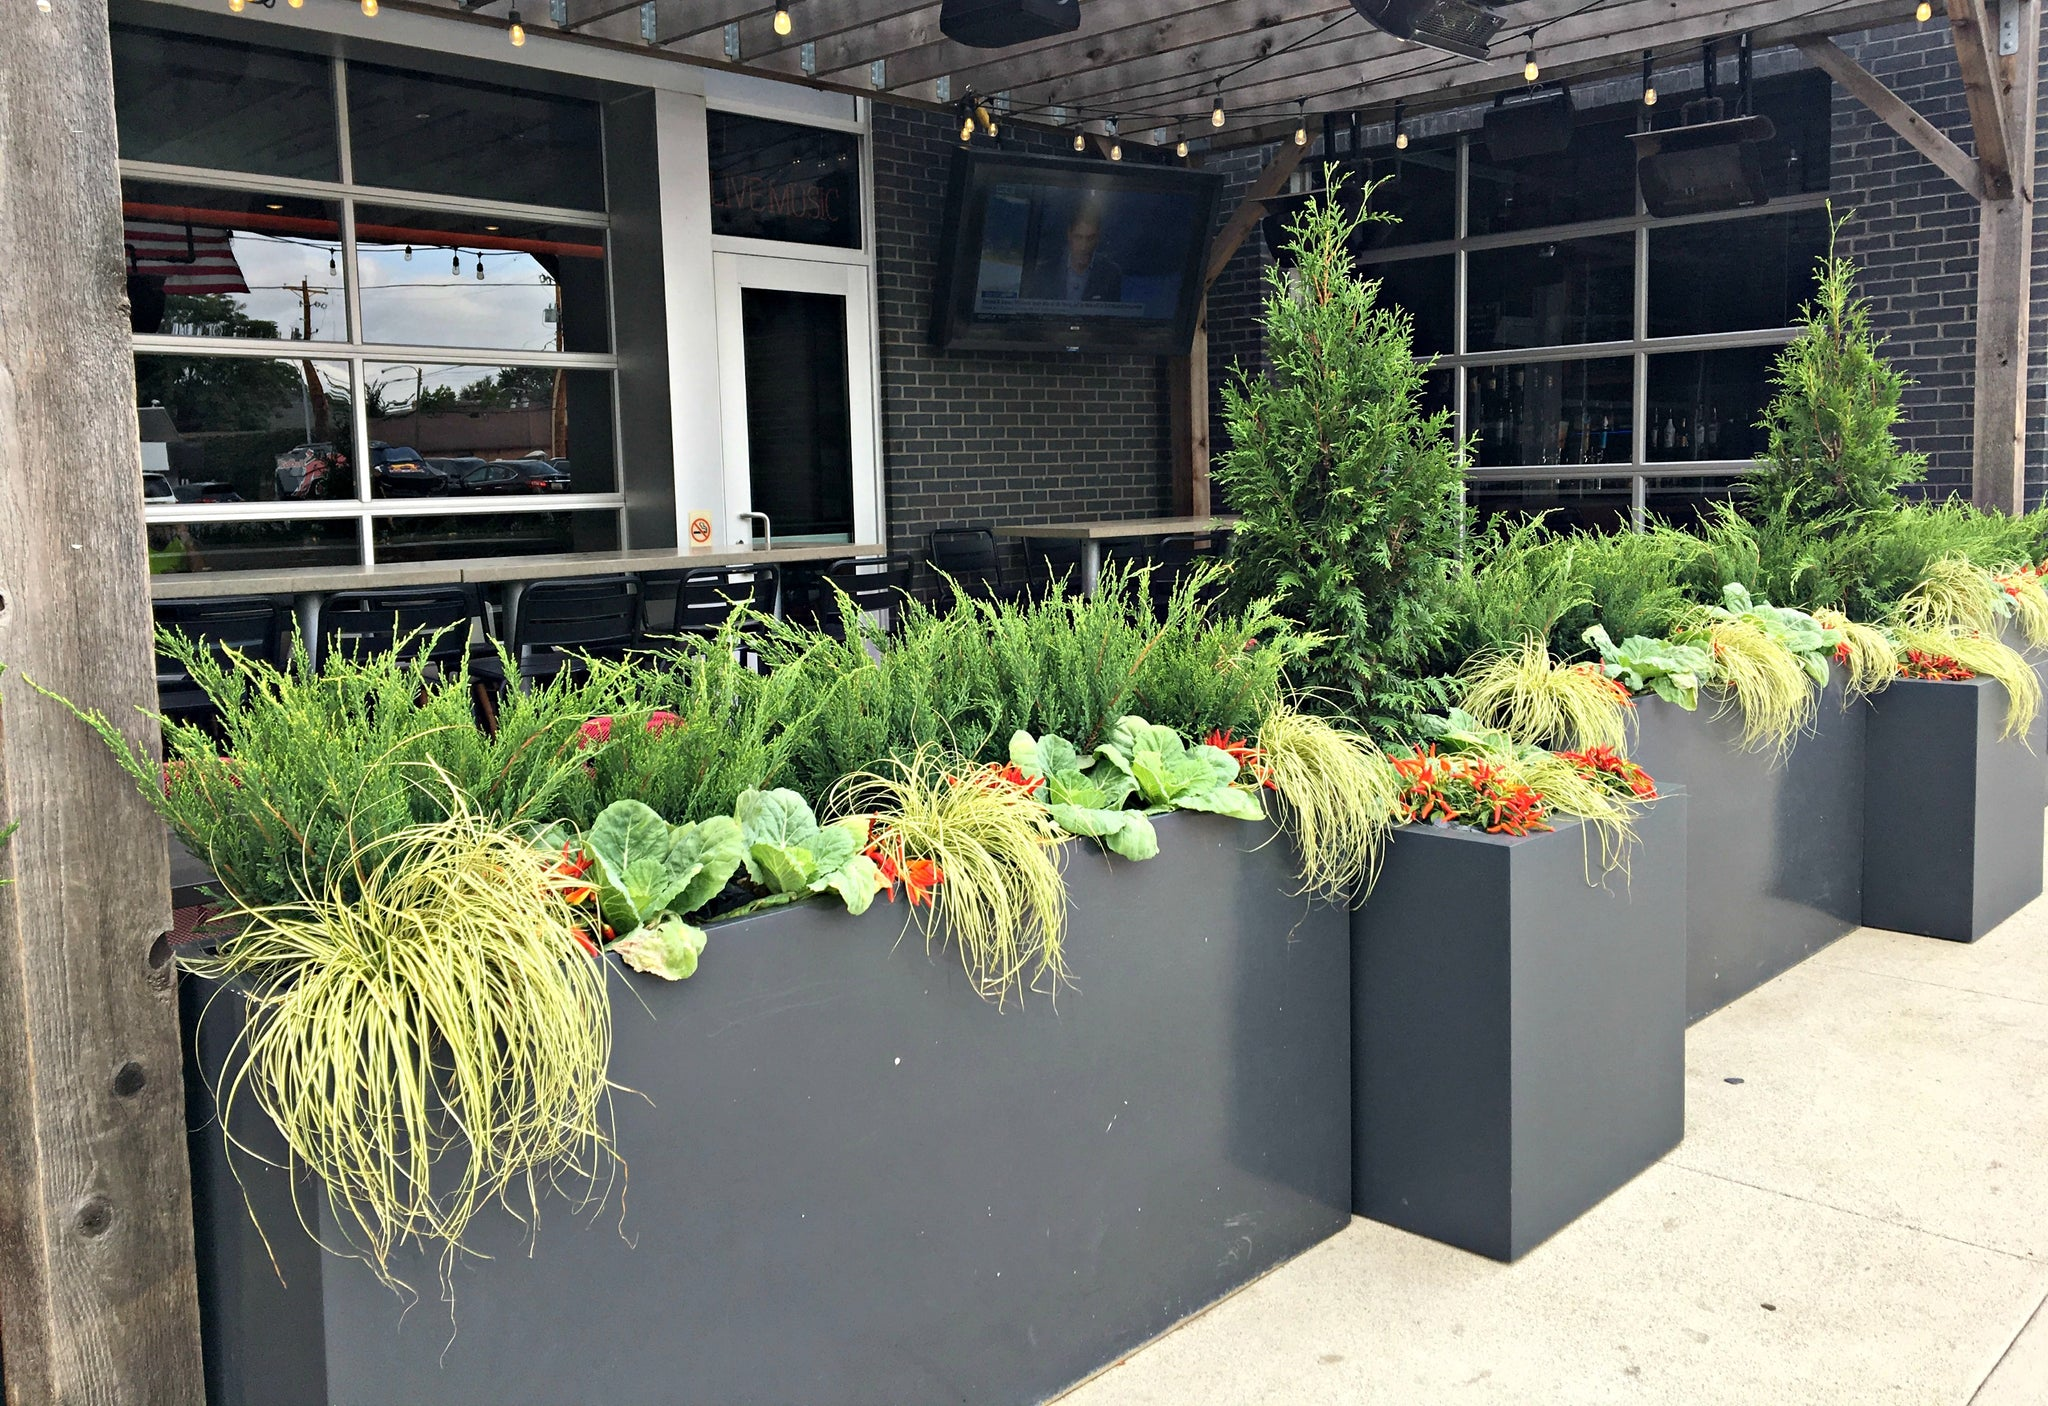 A collection of sidewalk and patio containers planted with fall annuals and evergreens to provide a lovely urban landsacpe.